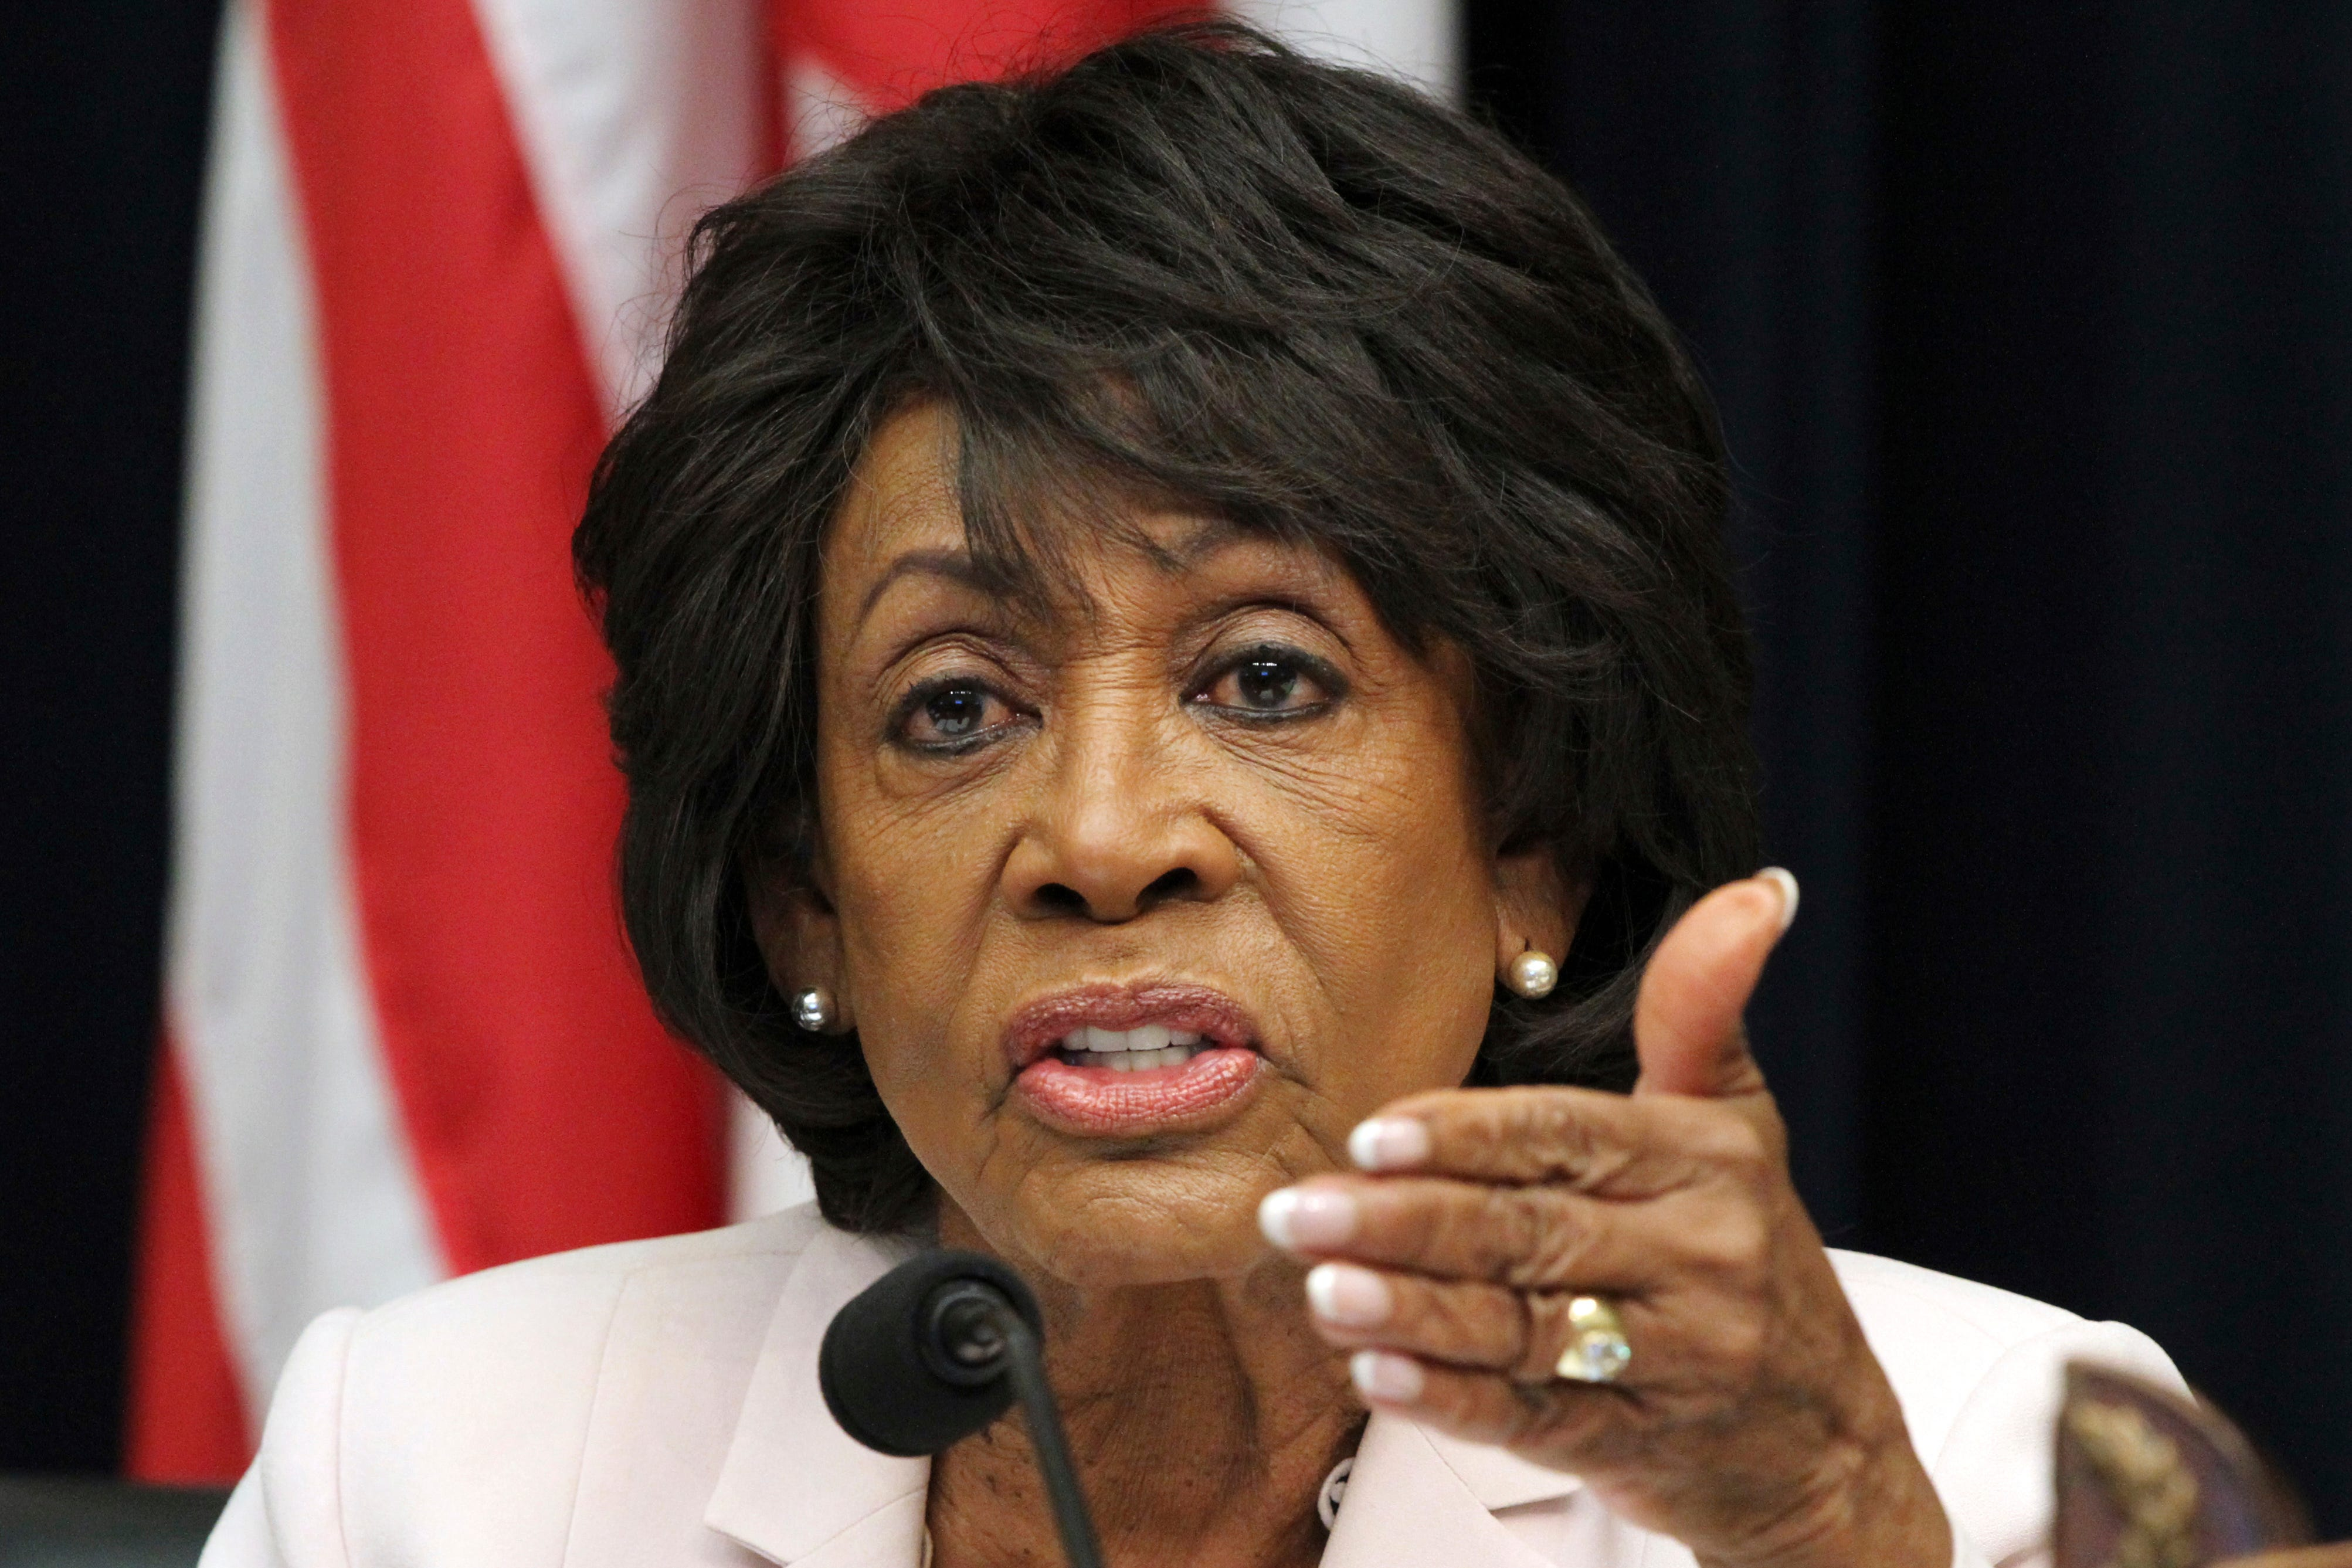 Rep. Maxine Waters: Trump needs to be put 'in solitary confinement'